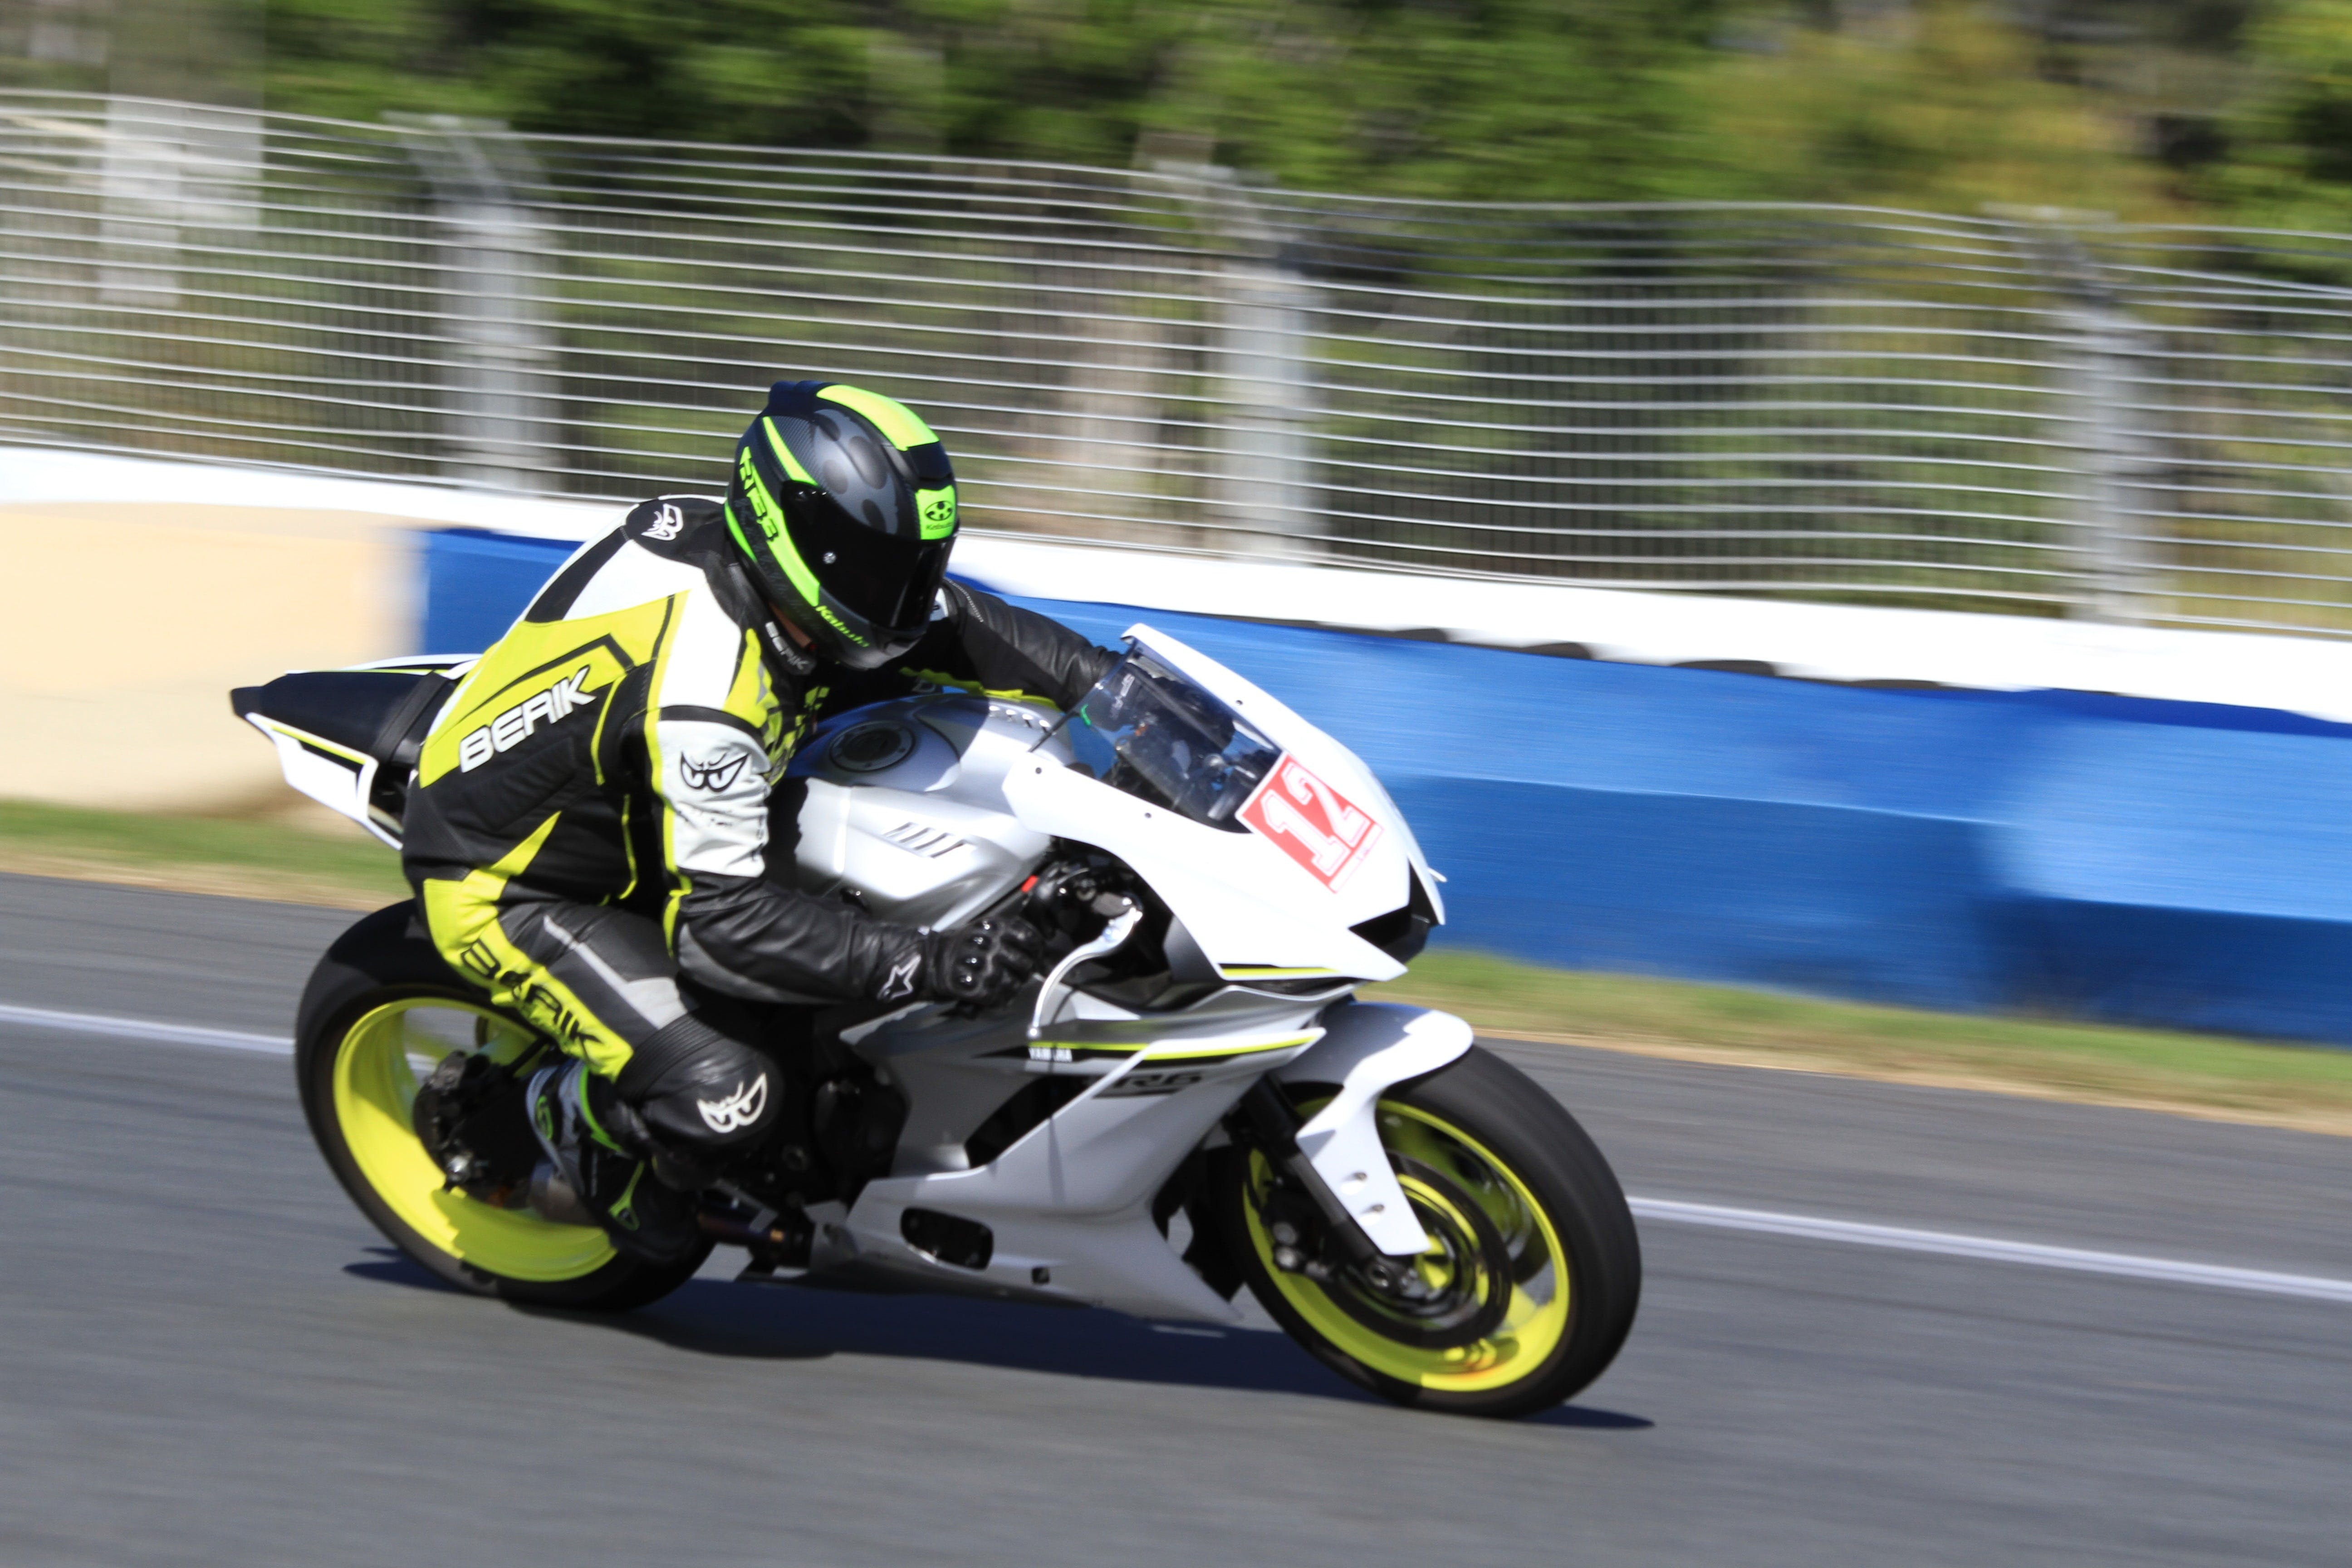 QR Moto Ride Days at Queensland Raceways - Accommodation in Surfers Paradise